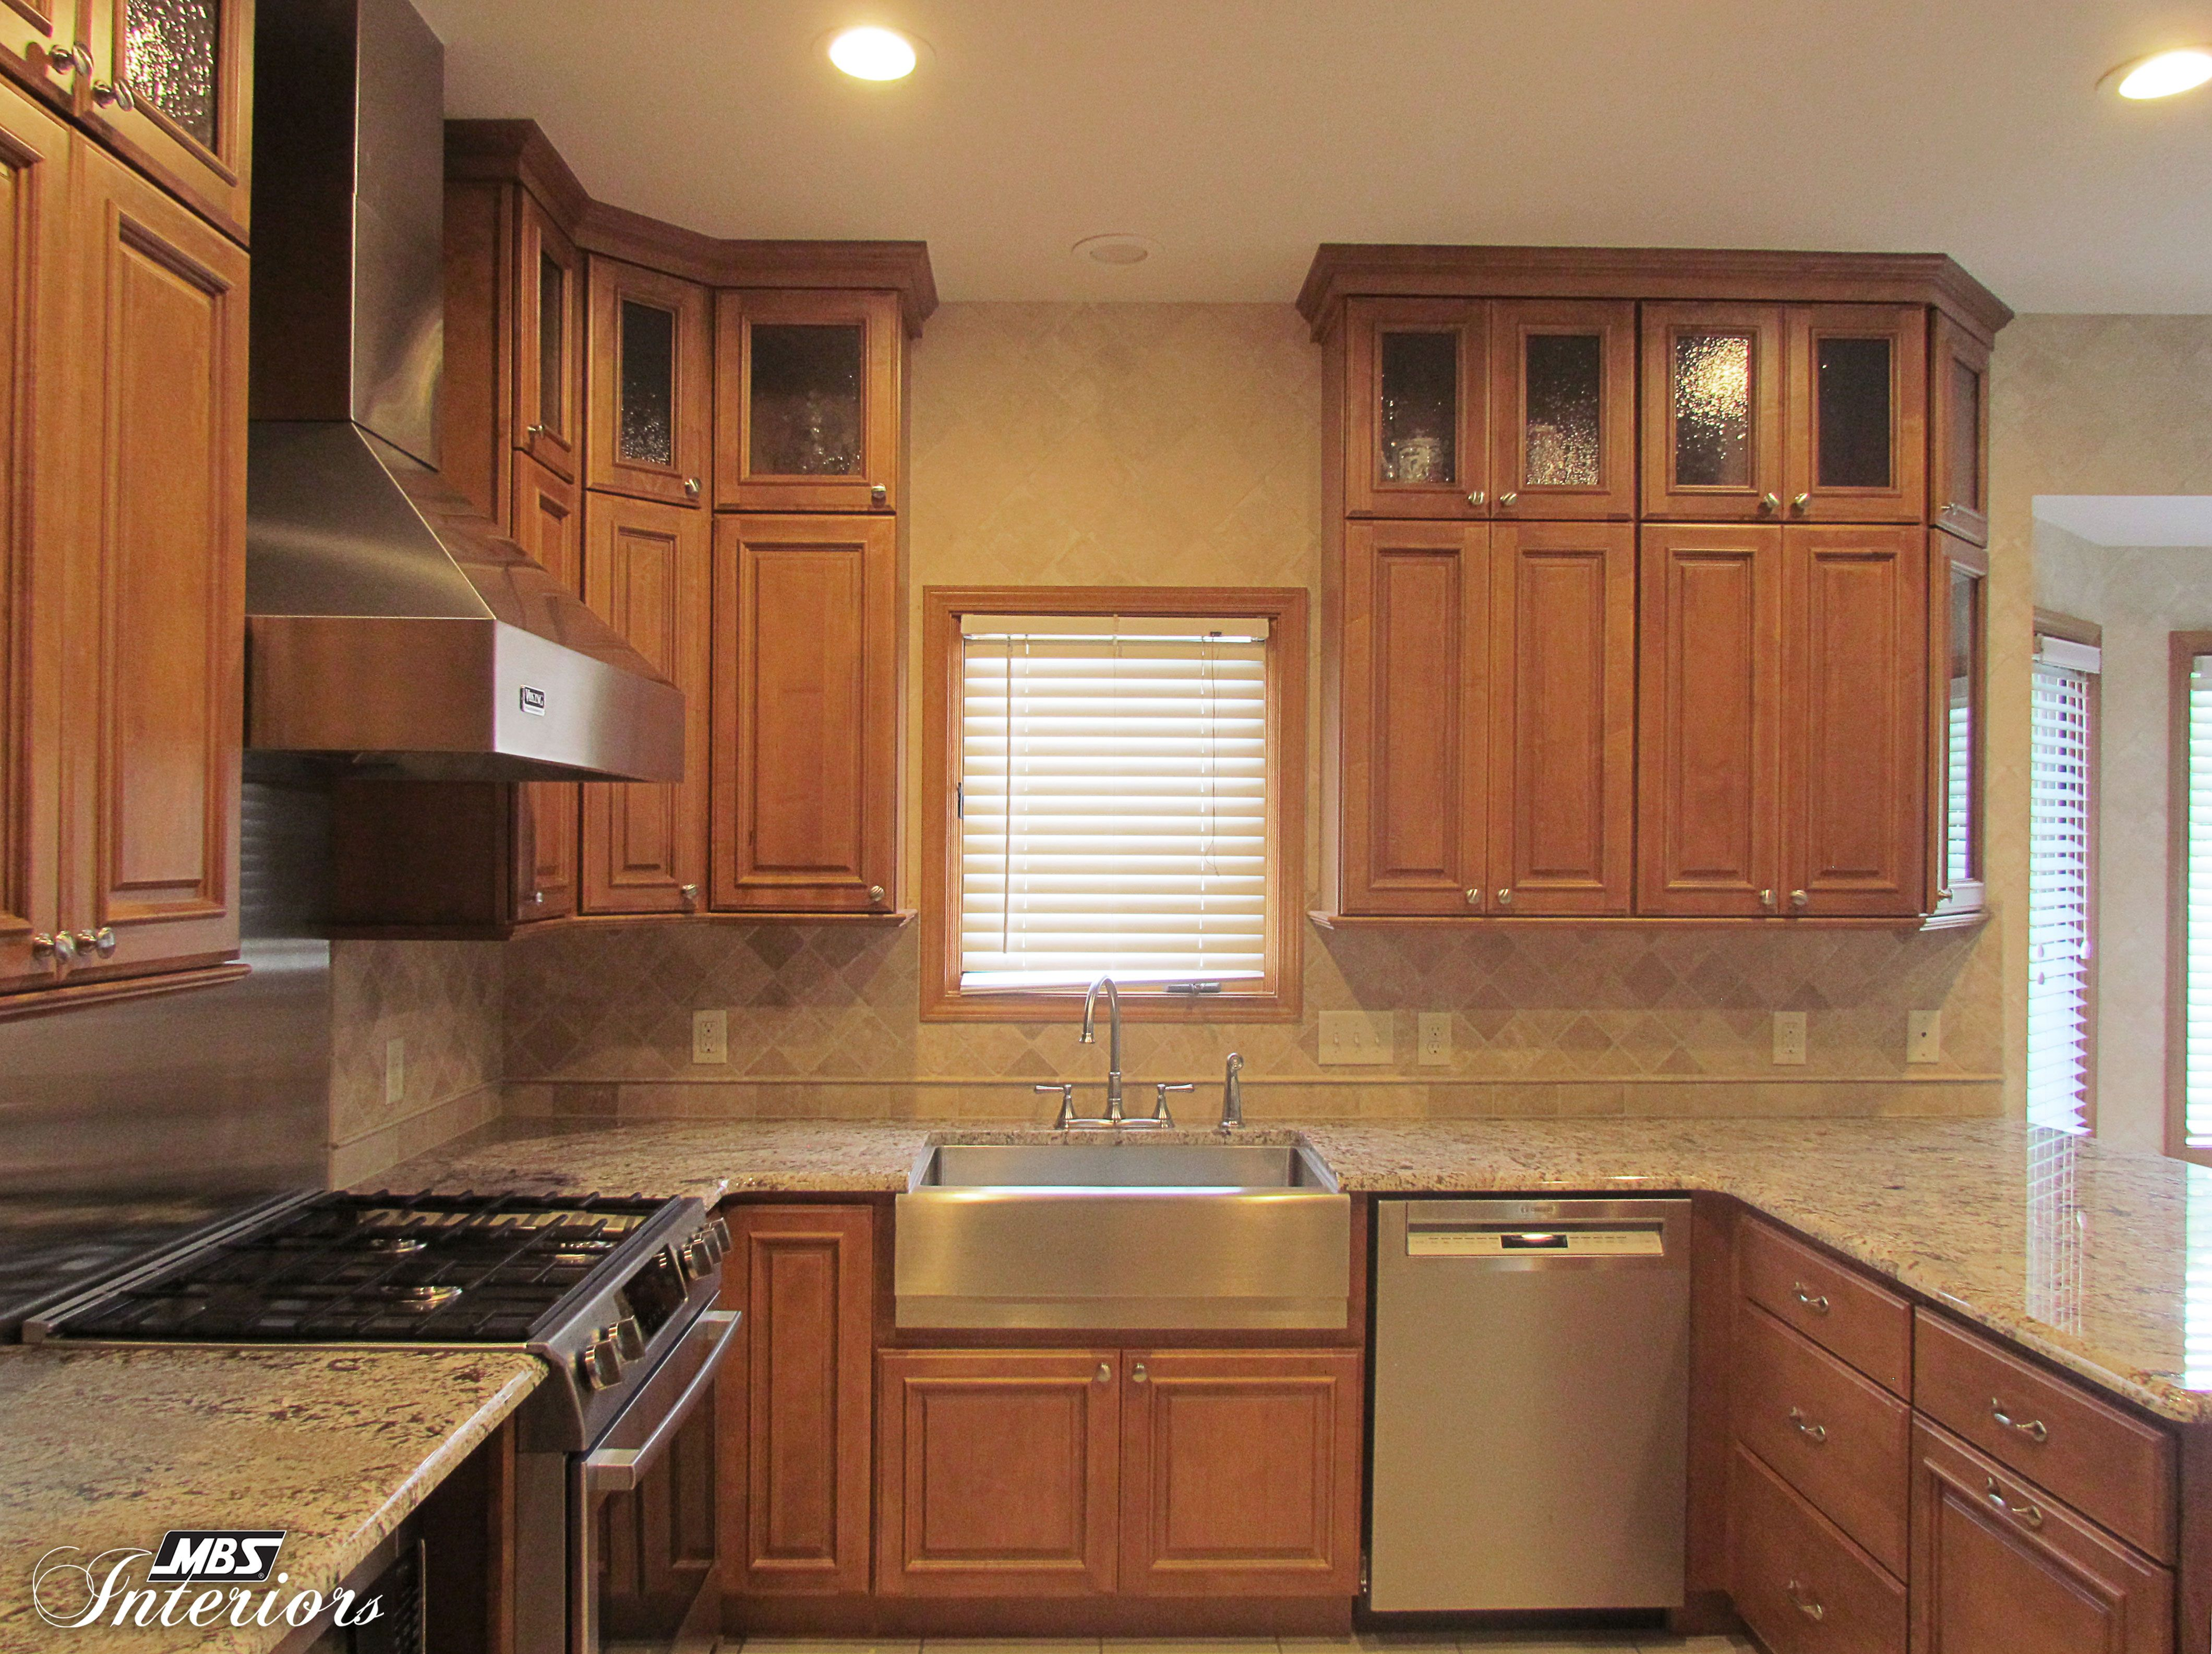 A Kitchen Remodel In Holland Ohio Has A Simple Layout With A Ton Of Character Amy Car Brown Cabinets Kitchen Ideas Medium Brown Cabinets Kitchen Design Decor